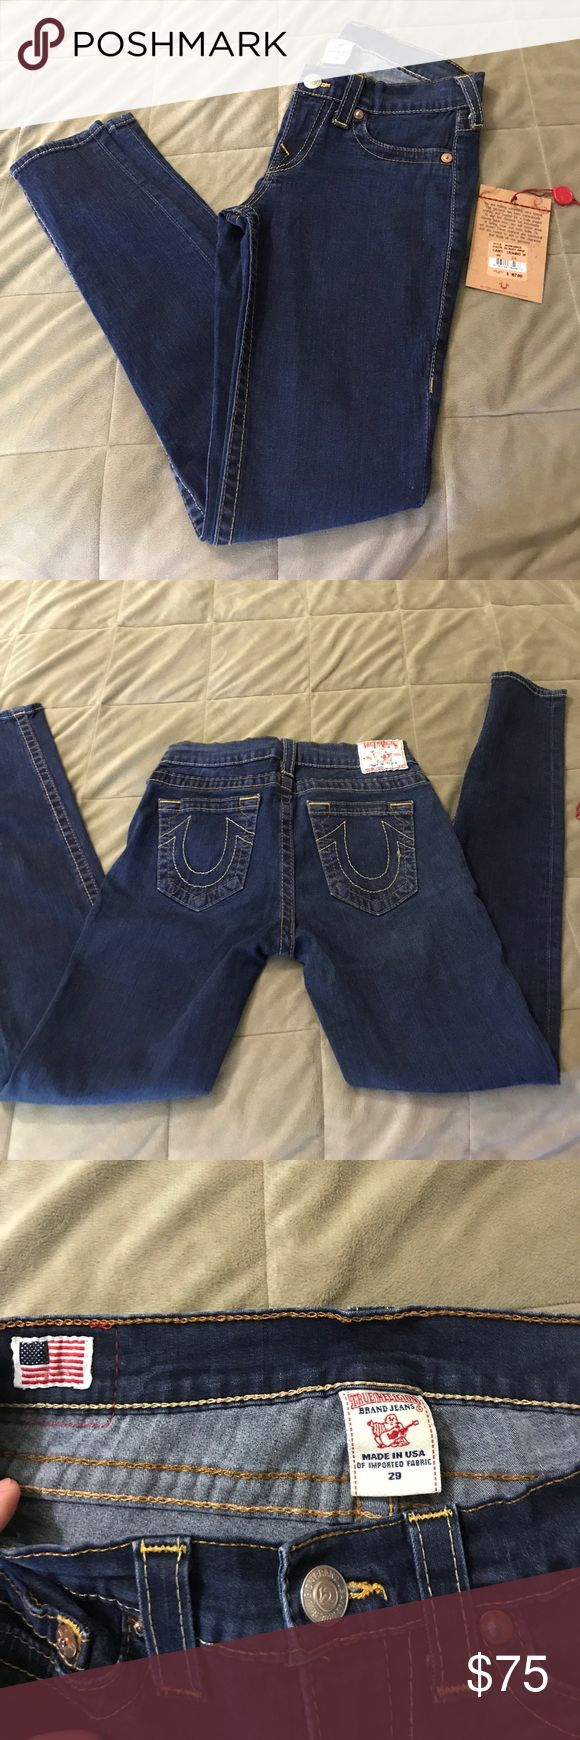 SALE🎉True Religion Casey Denim Leggings NWOT Attached but present. I've tried to wear these but the rise is just too low for me so I've decided to sell. Excellent Condition! Dark Rinse. Size 29. True Religion Jeans Skinny